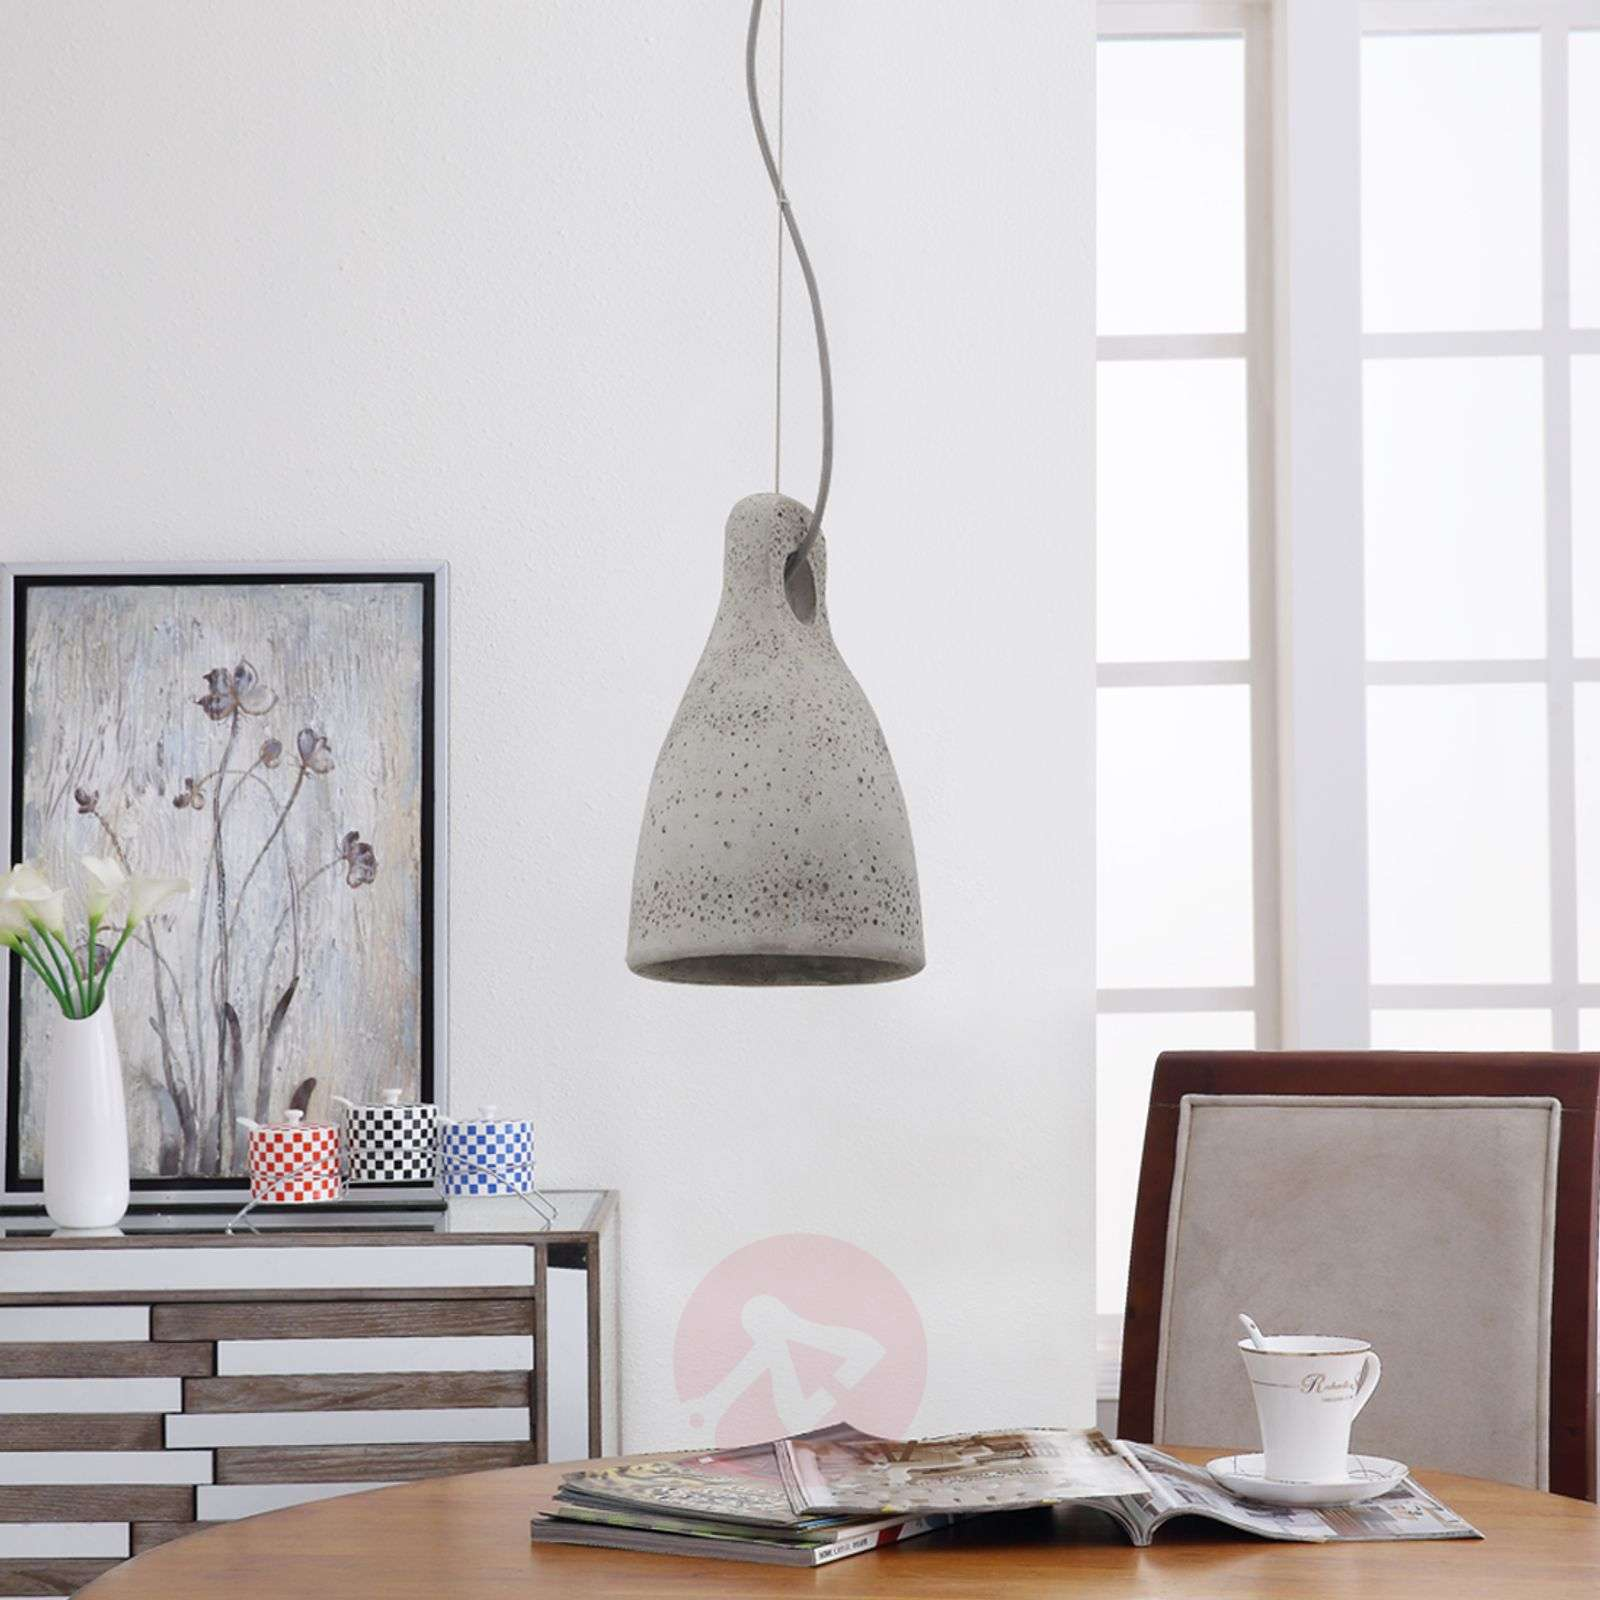 Concrete pendant light Lenna in grey-9620680-01